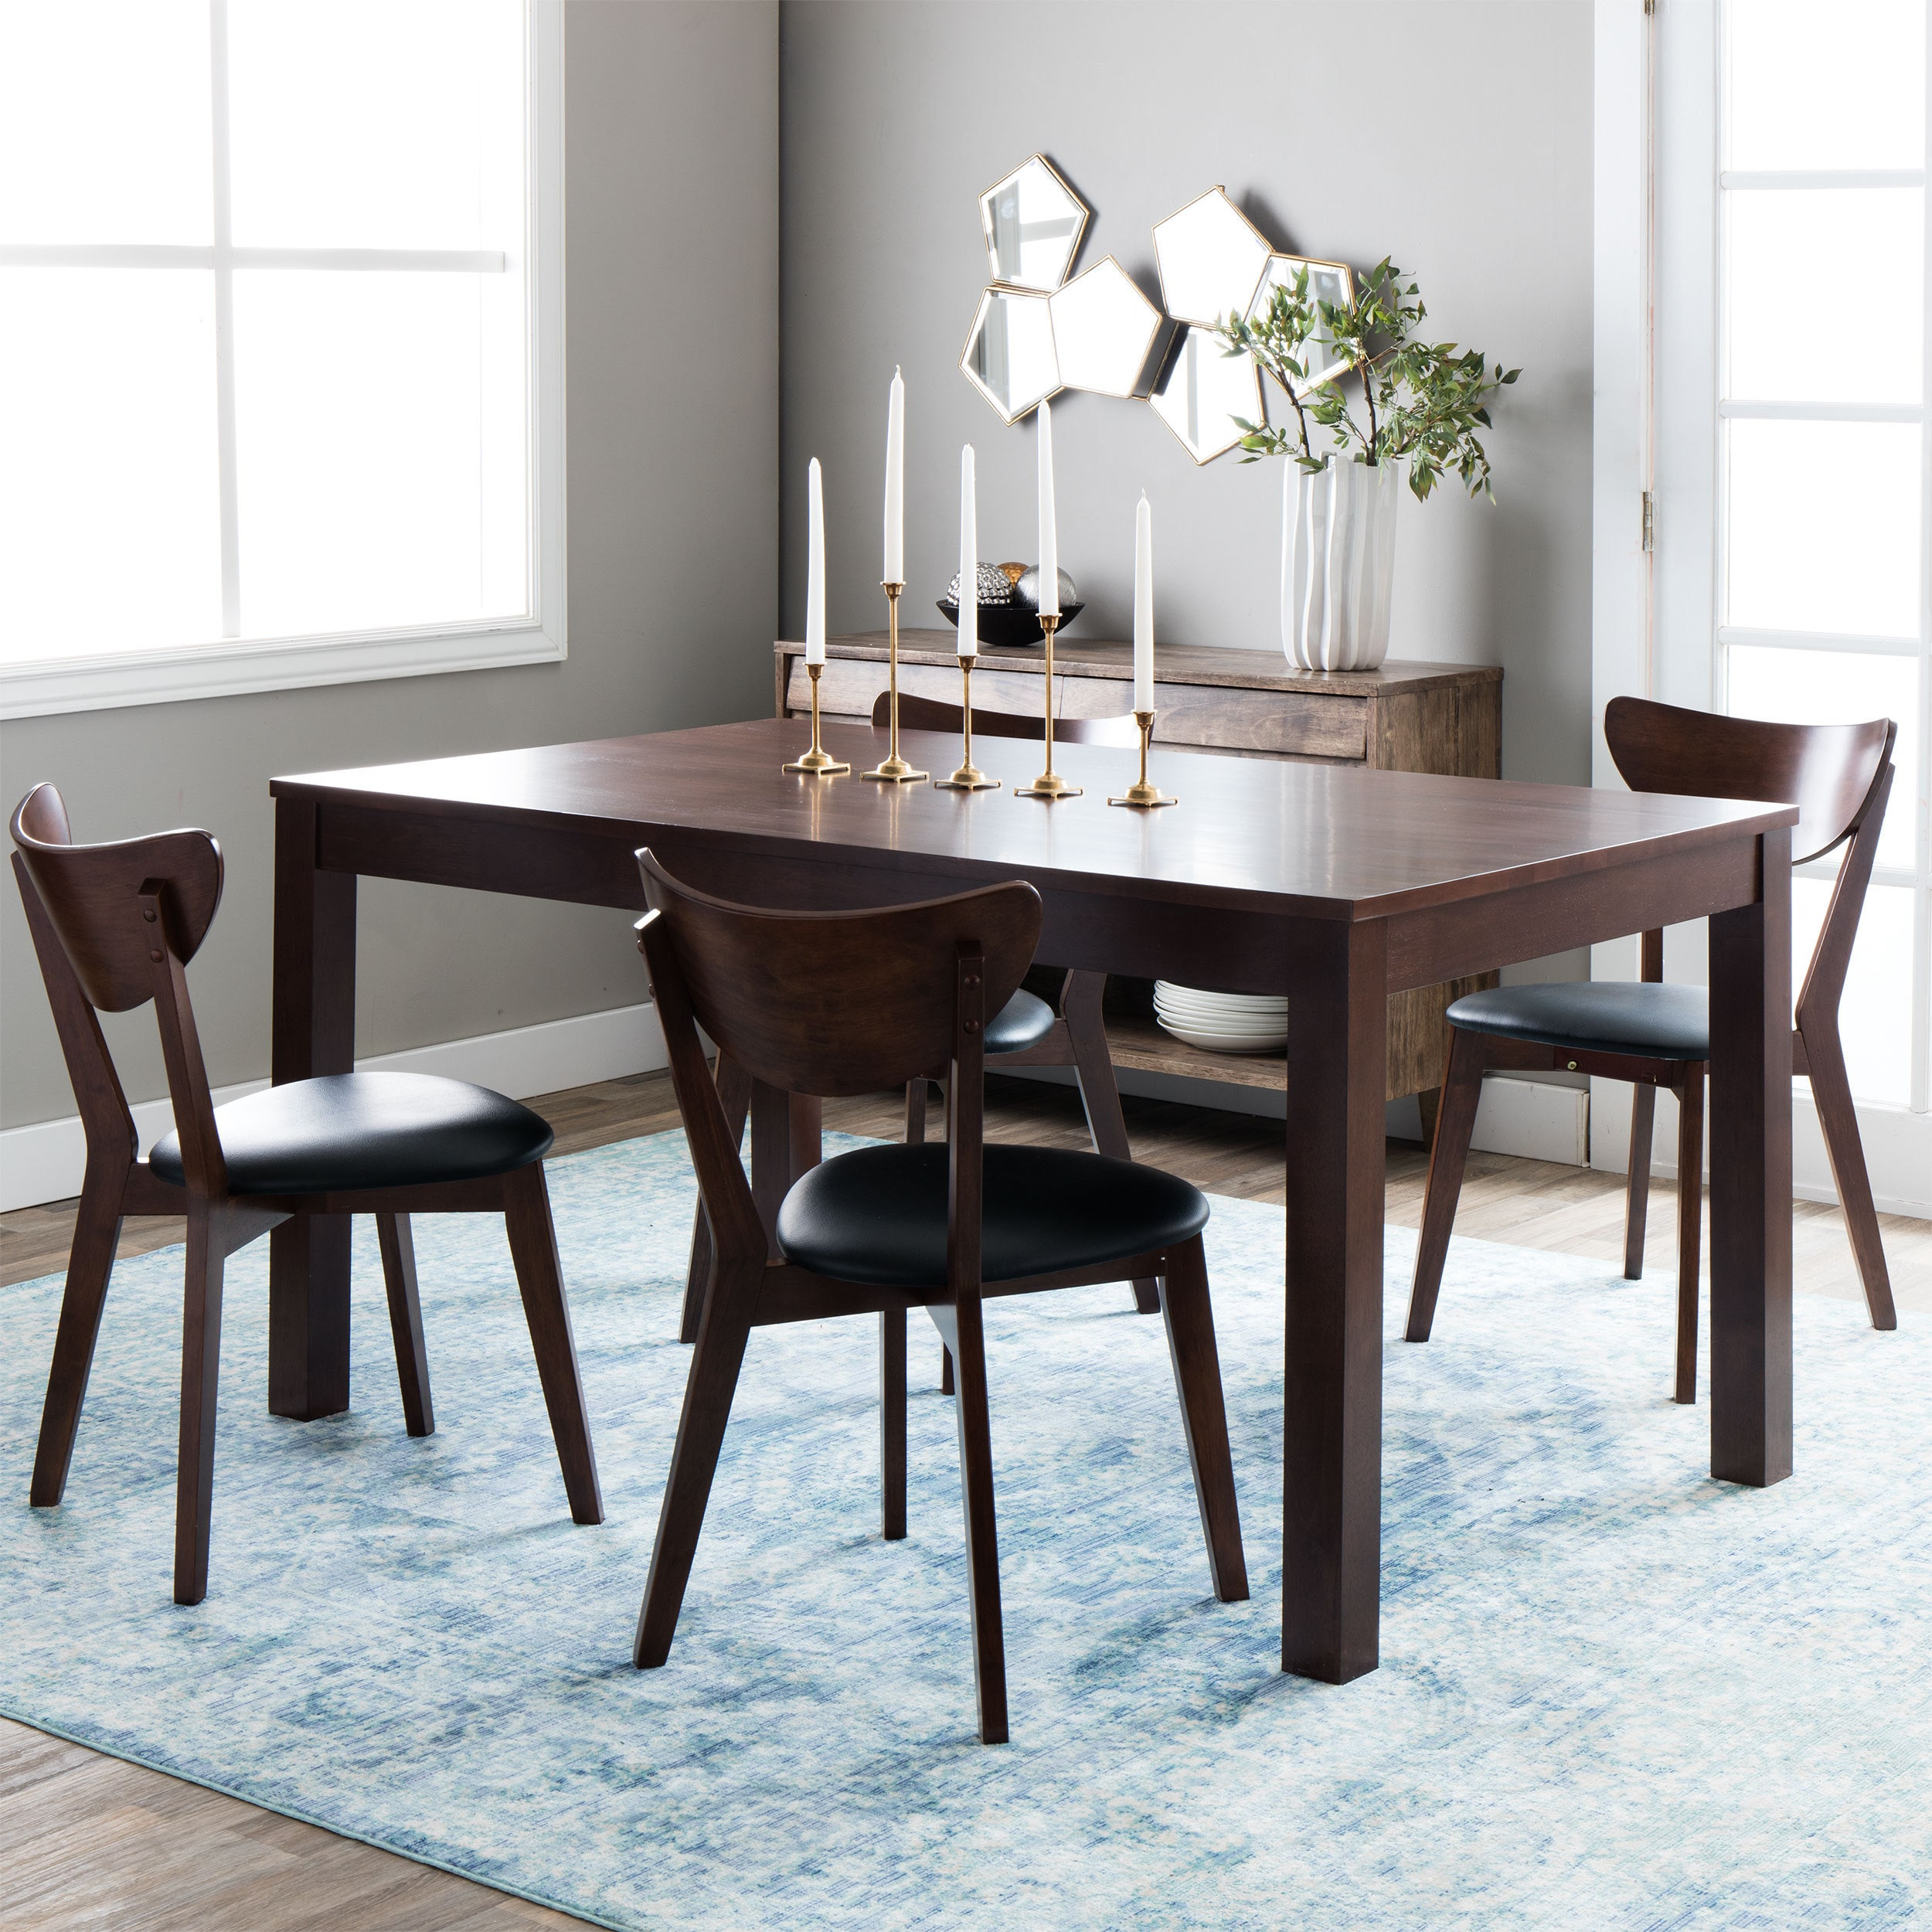 Clay Alder Home Mendota Dining Table